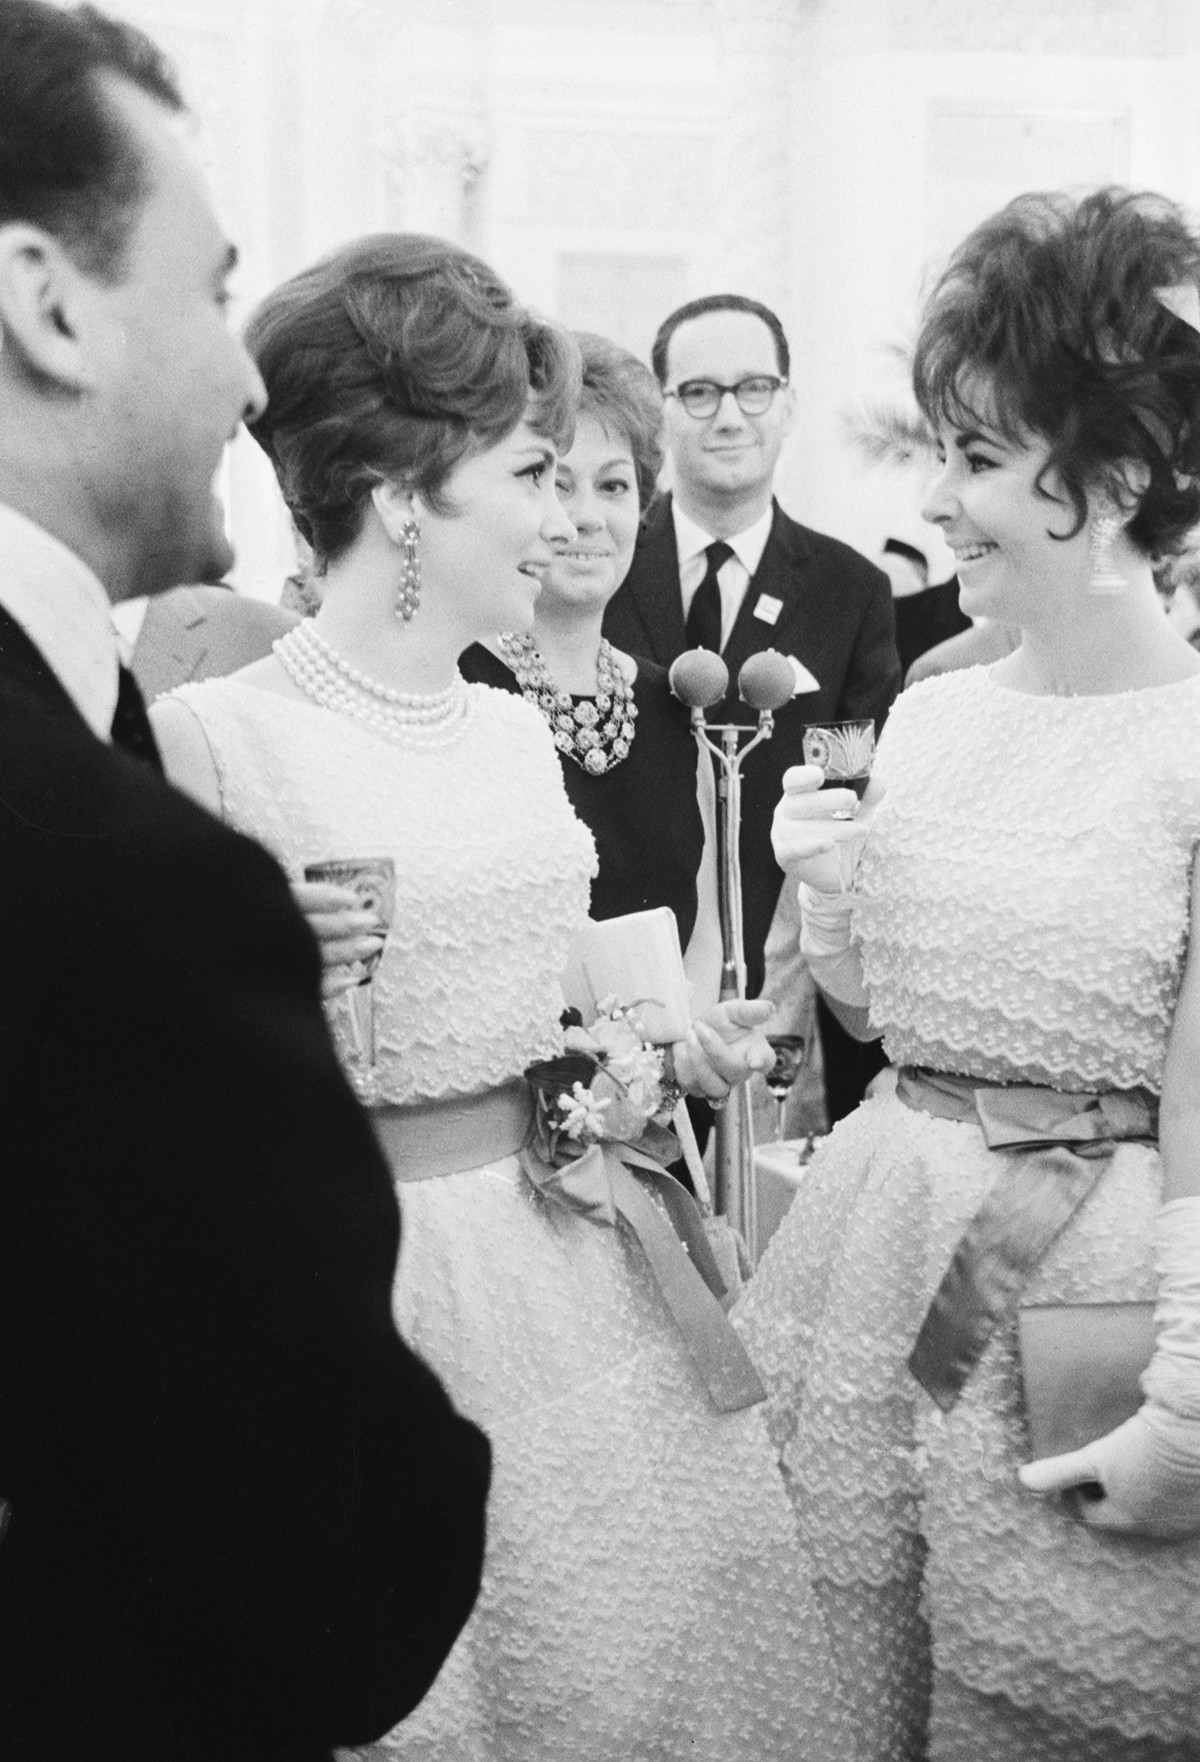 Elizabeth Taylor (R) and Gina Lollobrigida during a reception in the Grand Kremlin Palace at the 2nd Moscow International Film Festival, 1961